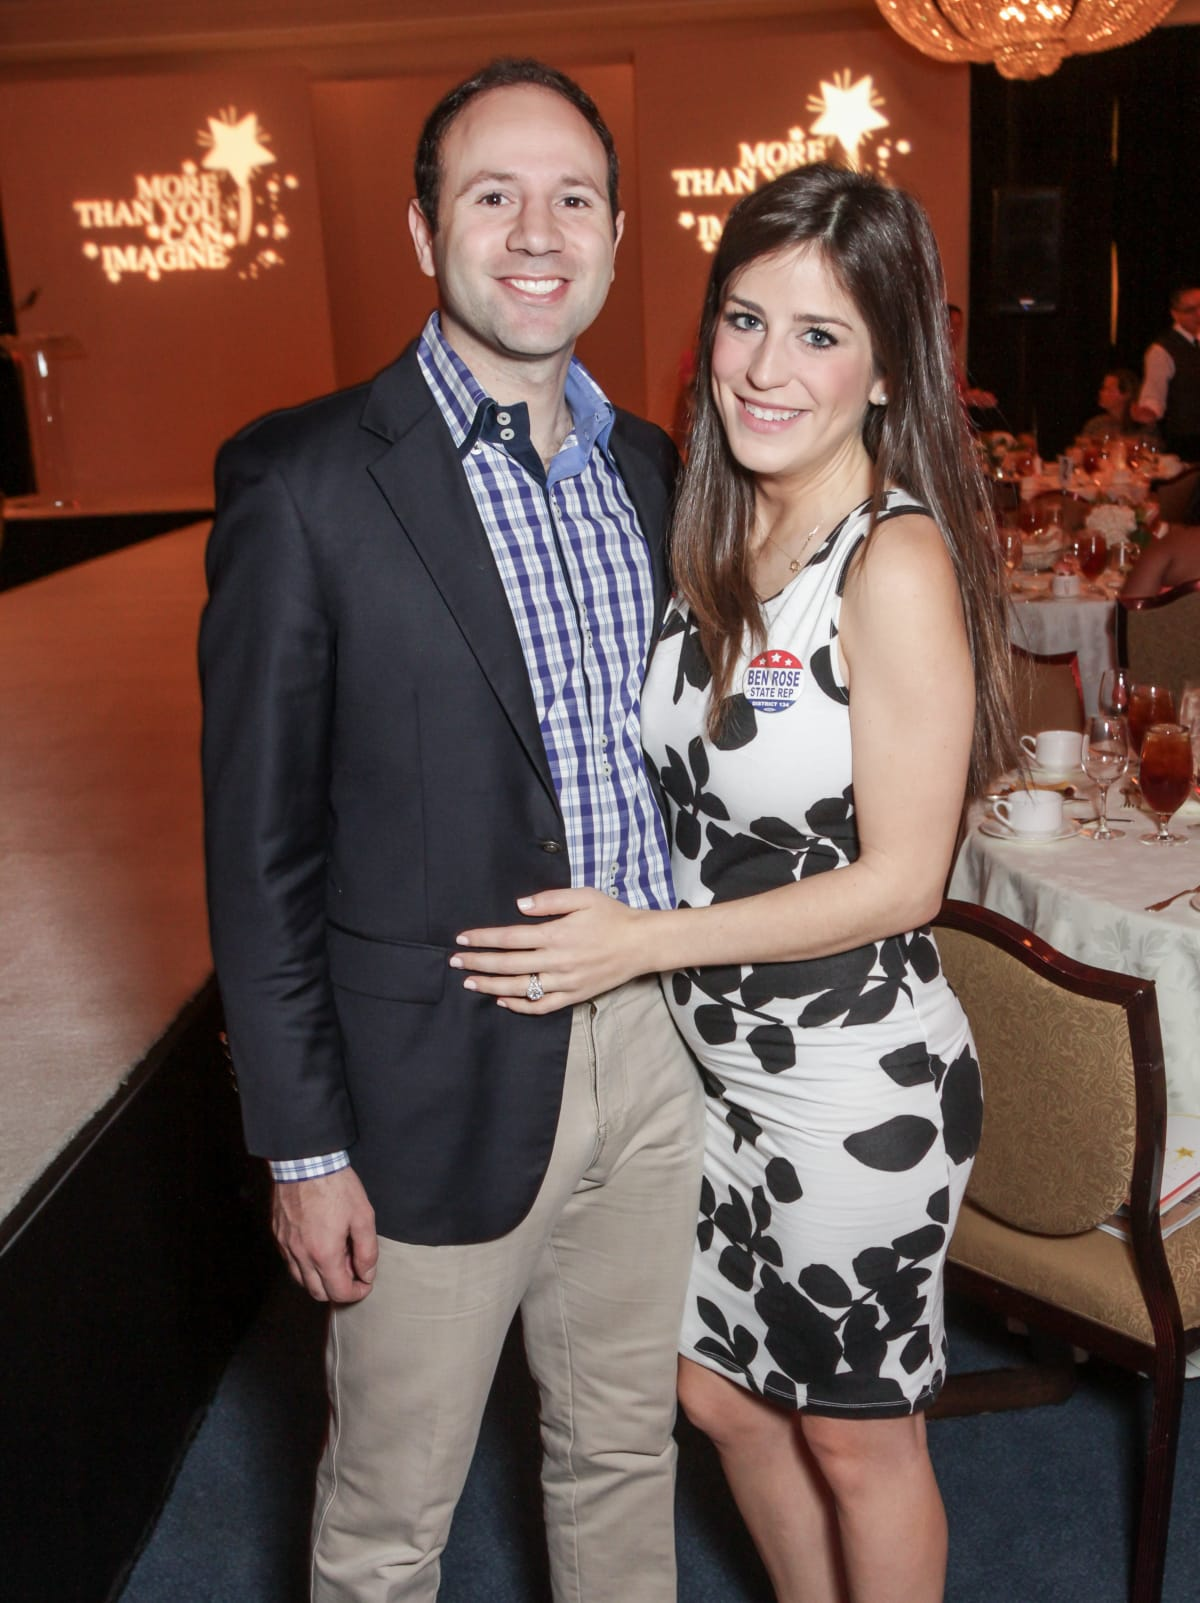 Houston, More Than You Can Imagine luncheon, April 2016, Ben and Laura Rose